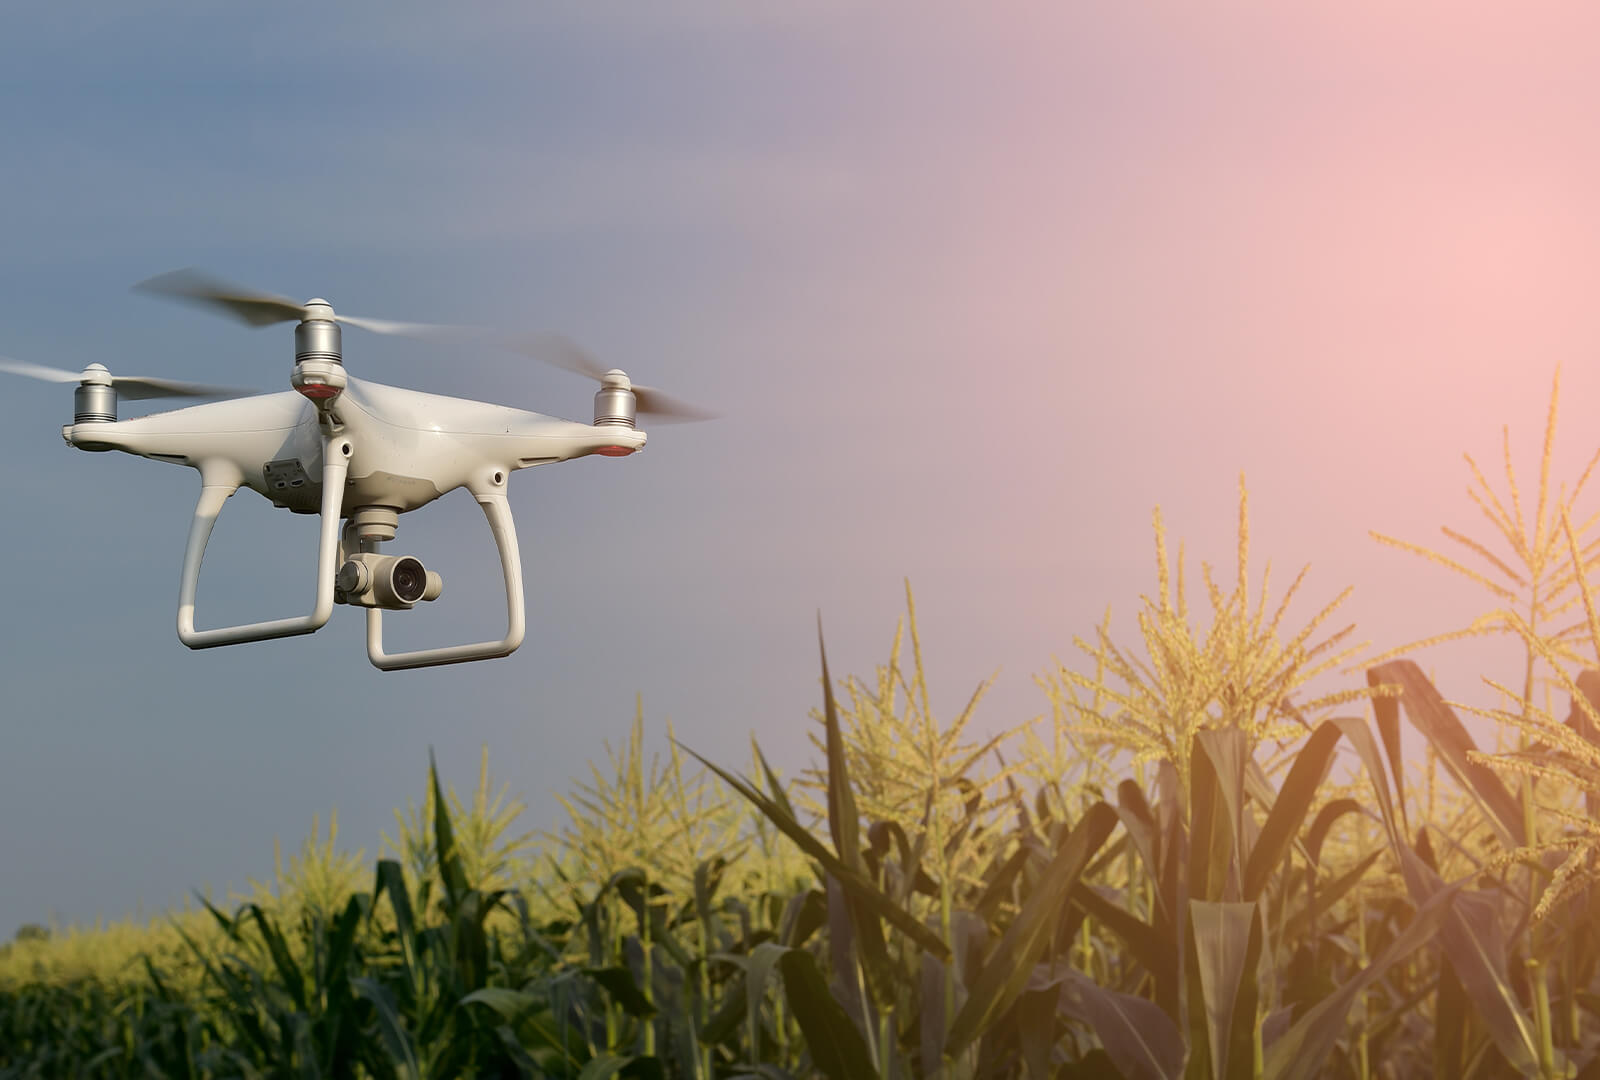 A camera drone flying over a field of corn